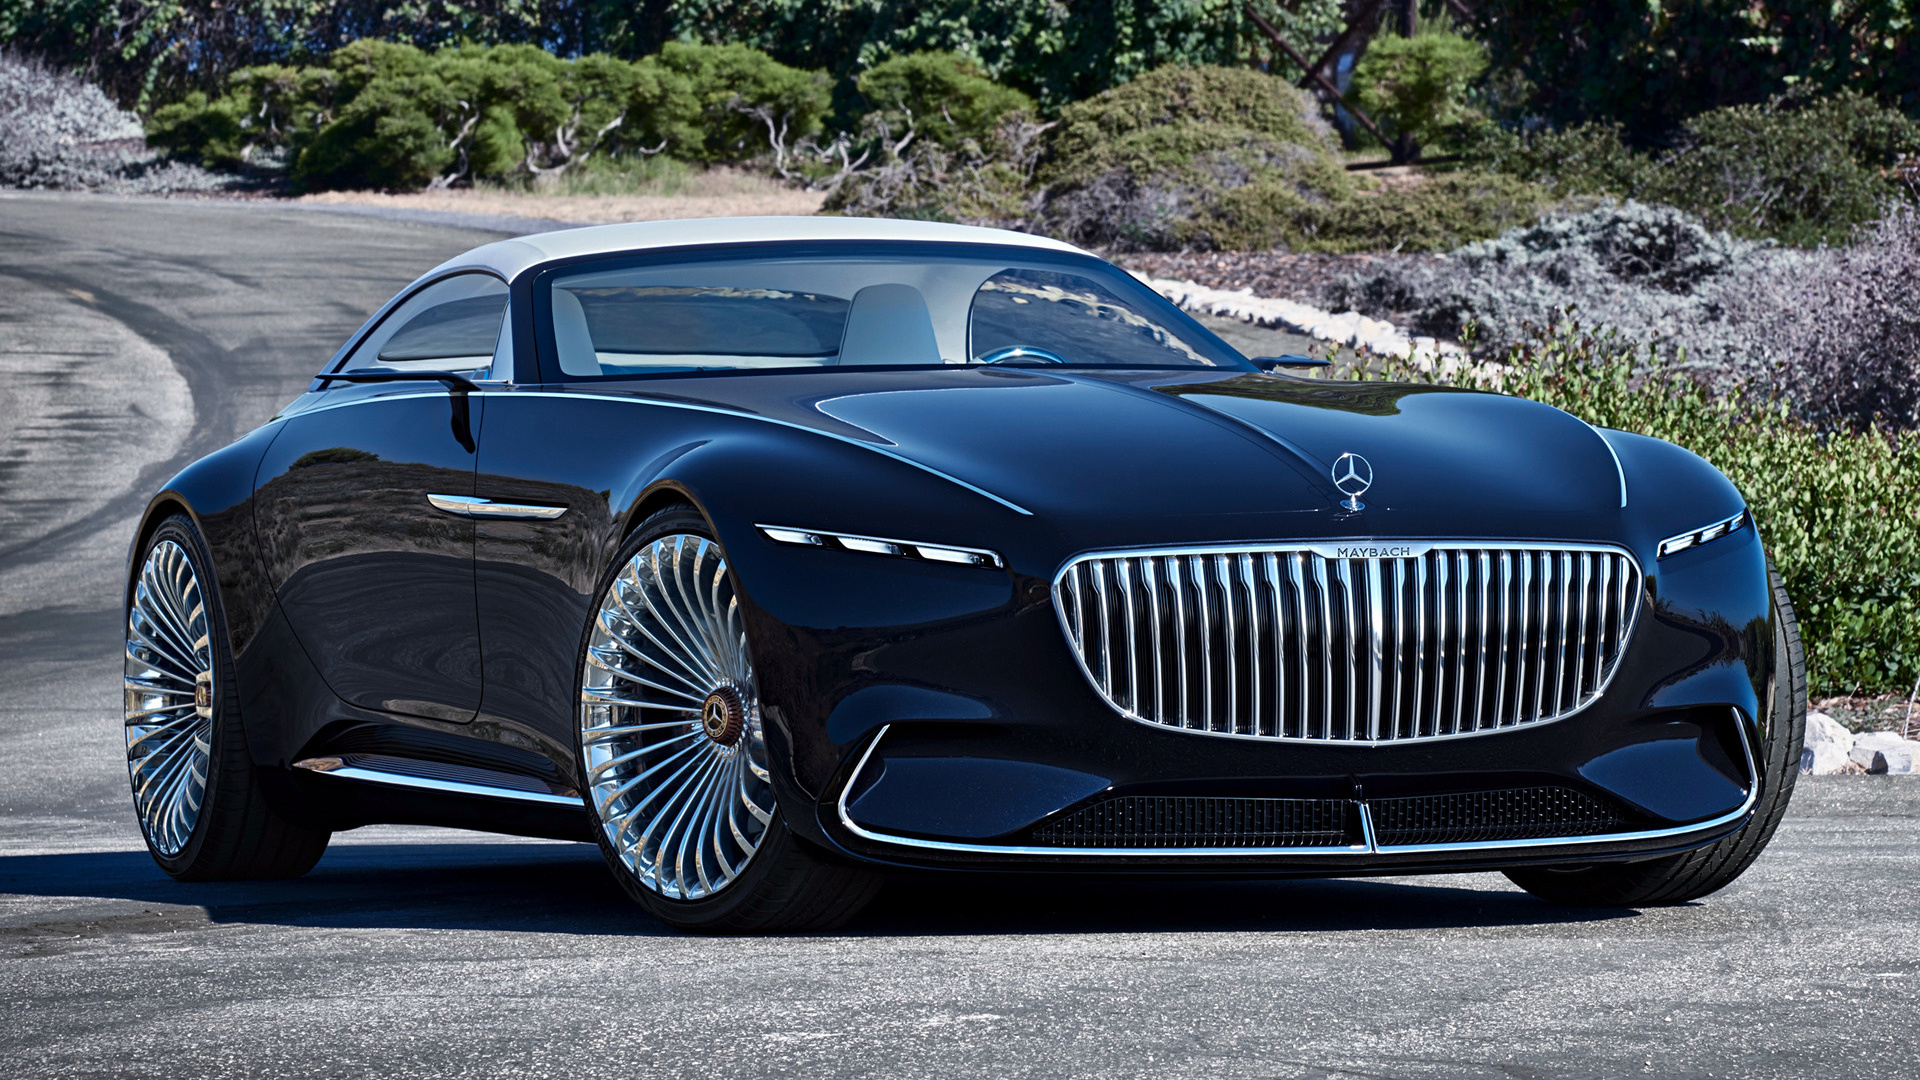 2017 vision mercedes-maybach 6 cabriolet - wallpapers and hd images